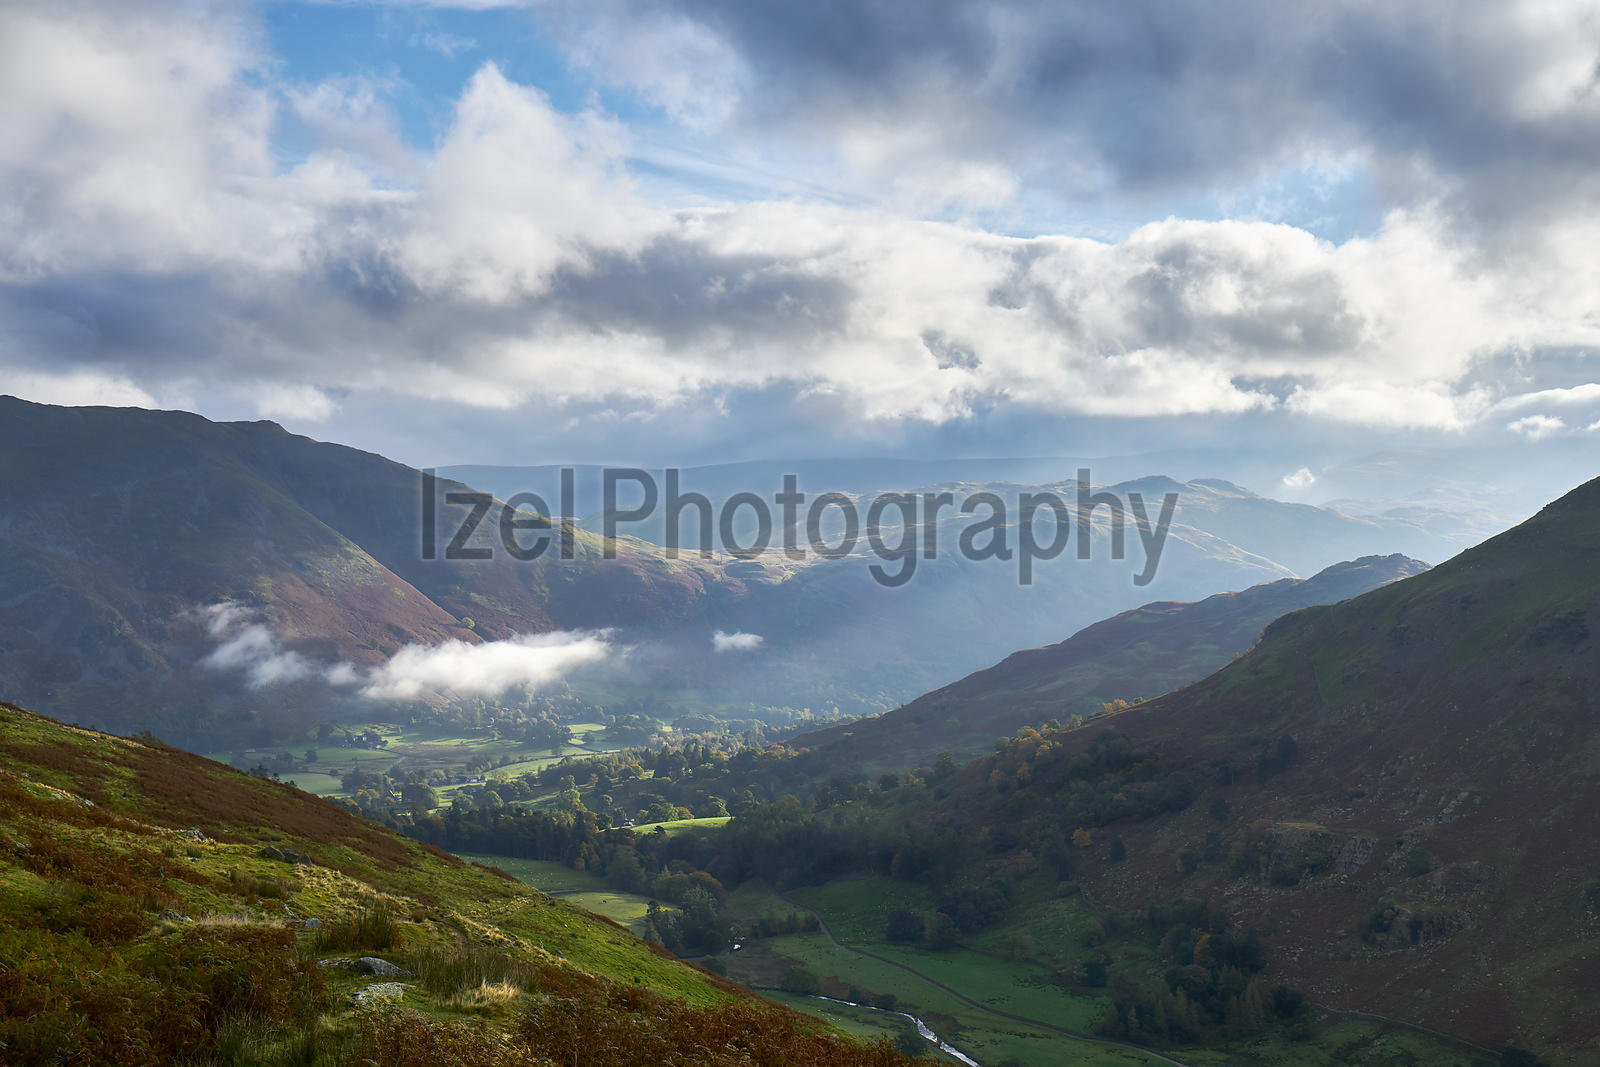 Looking down the trail towards Patterdale and Glenridding that leads up to the Hole in the Wall below Helvellyn in the Lake D...